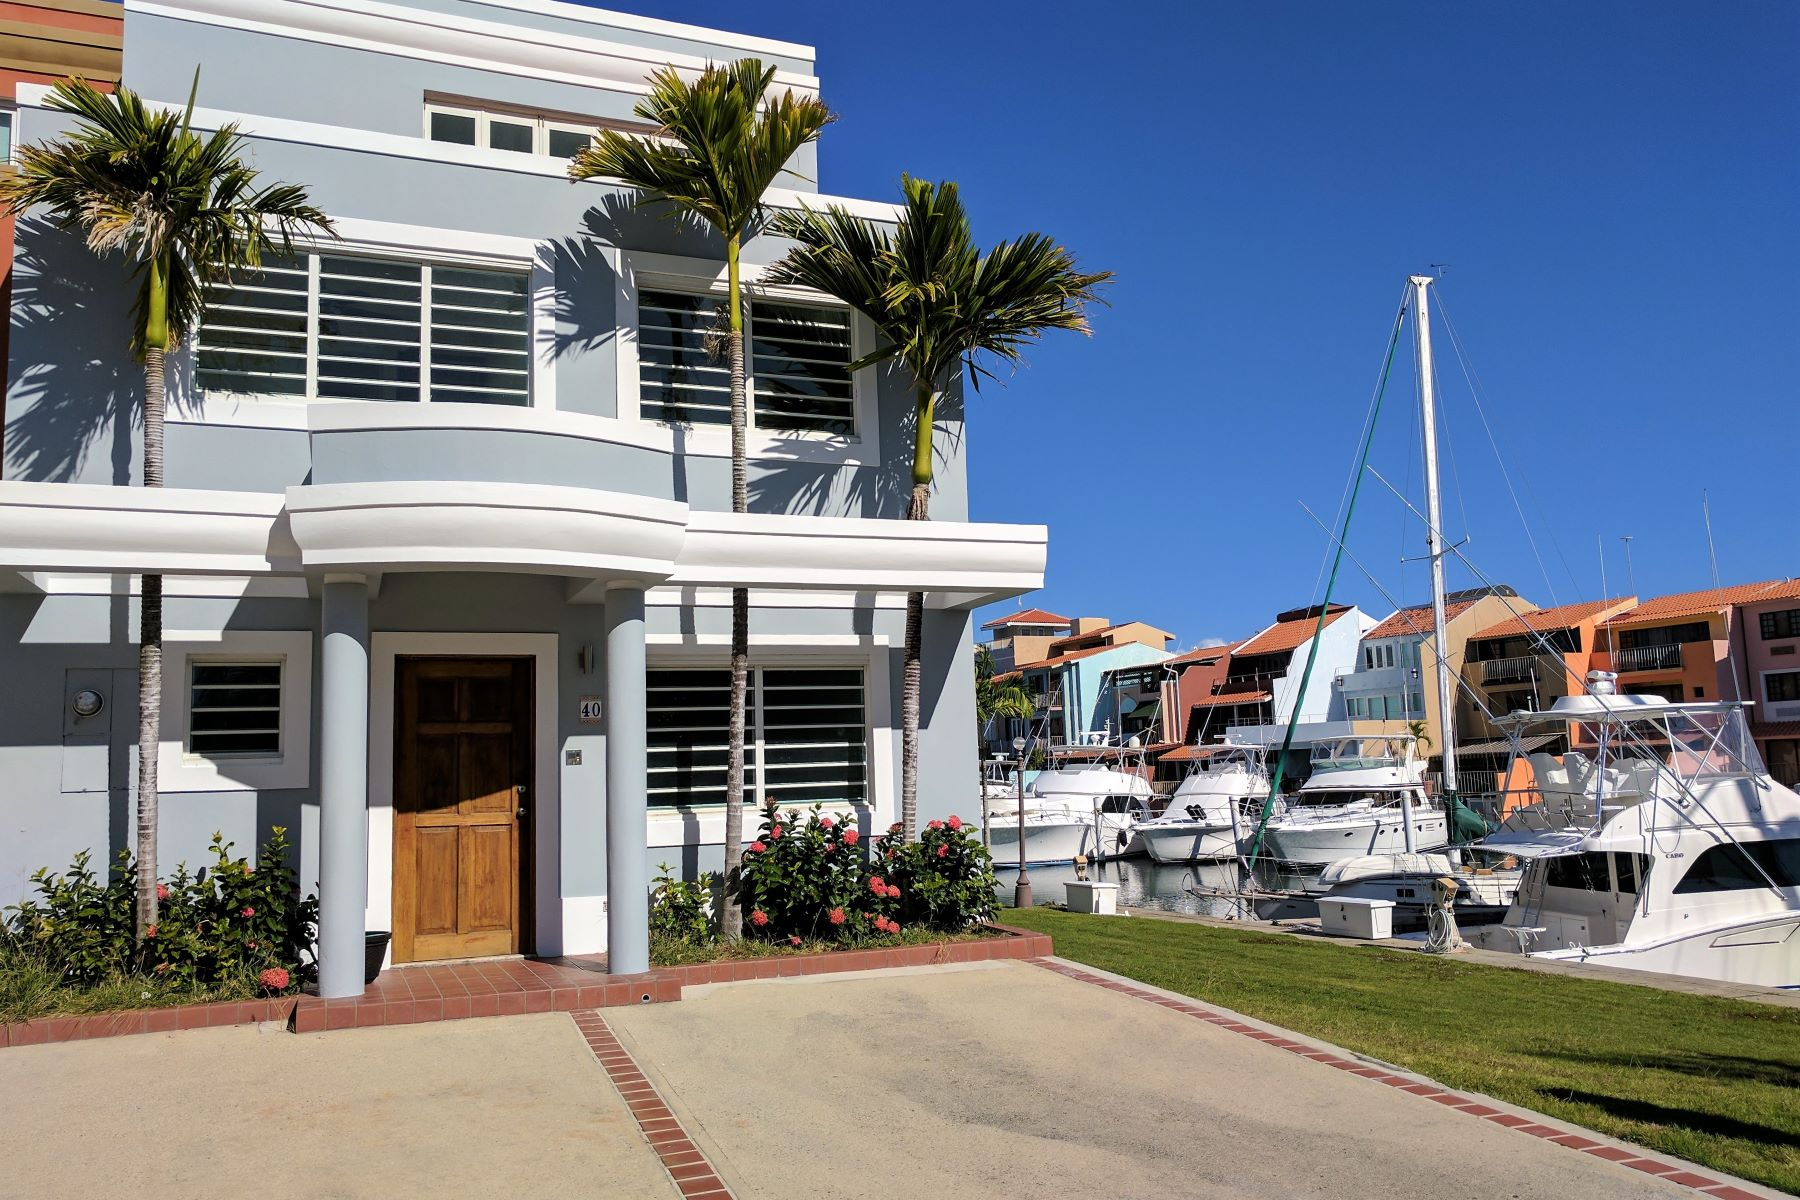 Townhouse for Sale at Waterfront Boaters Townhome at Peninsula 39 Peninsula de San Juan Palmas Del Mar, 00791 Puerto Rico